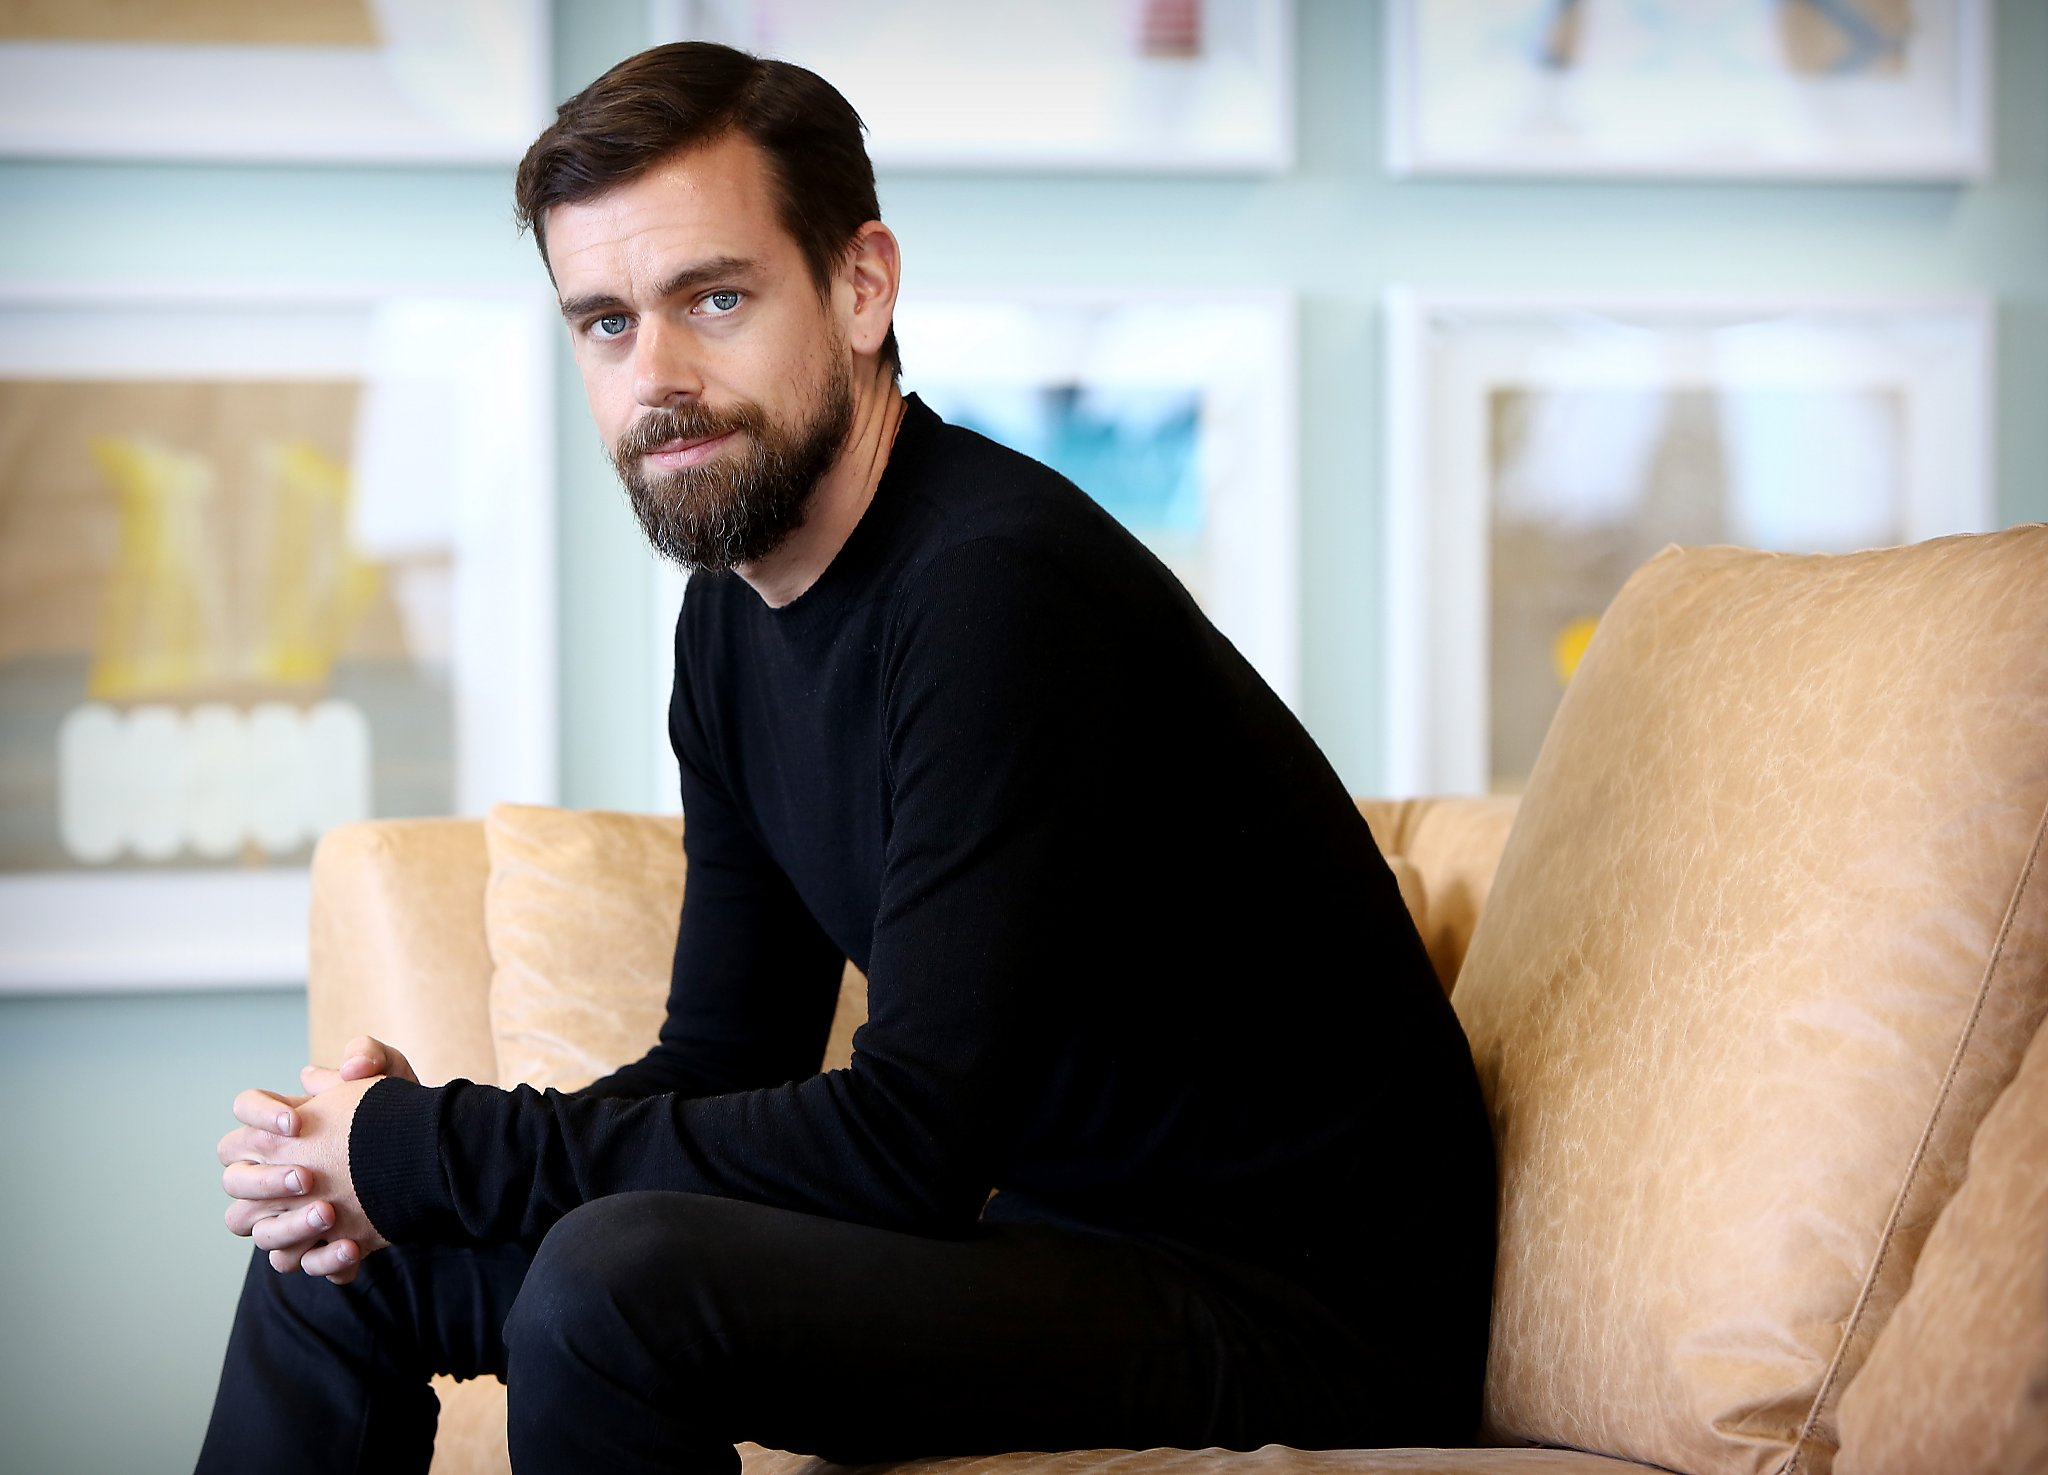 I Tried To Live Like Jack Dorsey For A Day I Immediately Regretted It